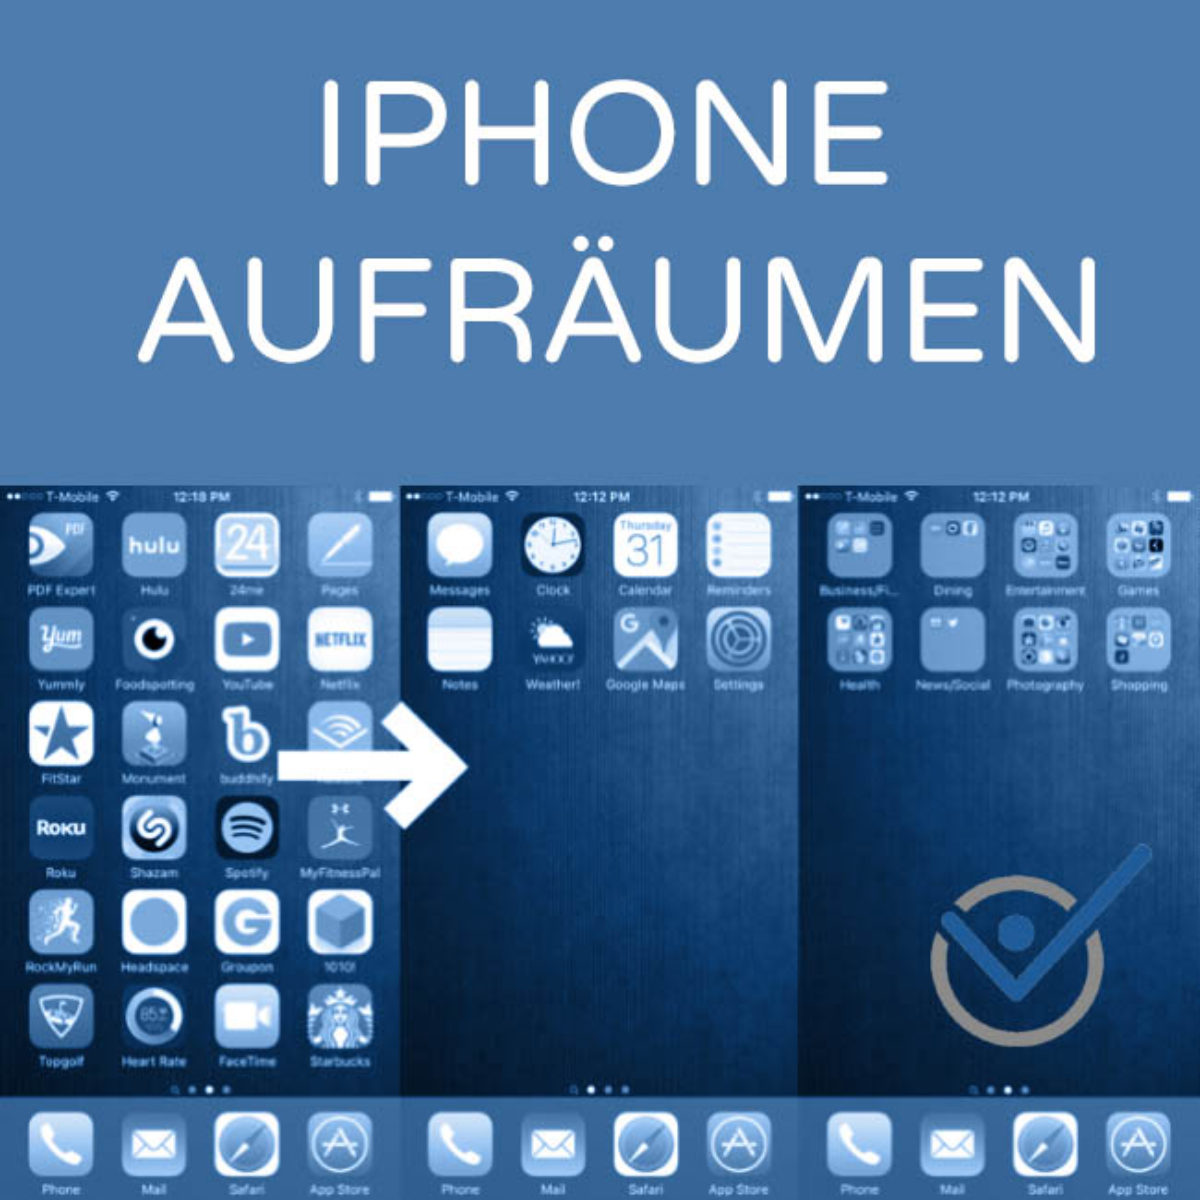 iphone aufr umen so bringen sie ordnung und minimalismus aufs telefon. Black Bedroom Furniture Sets. Home Design Ideas